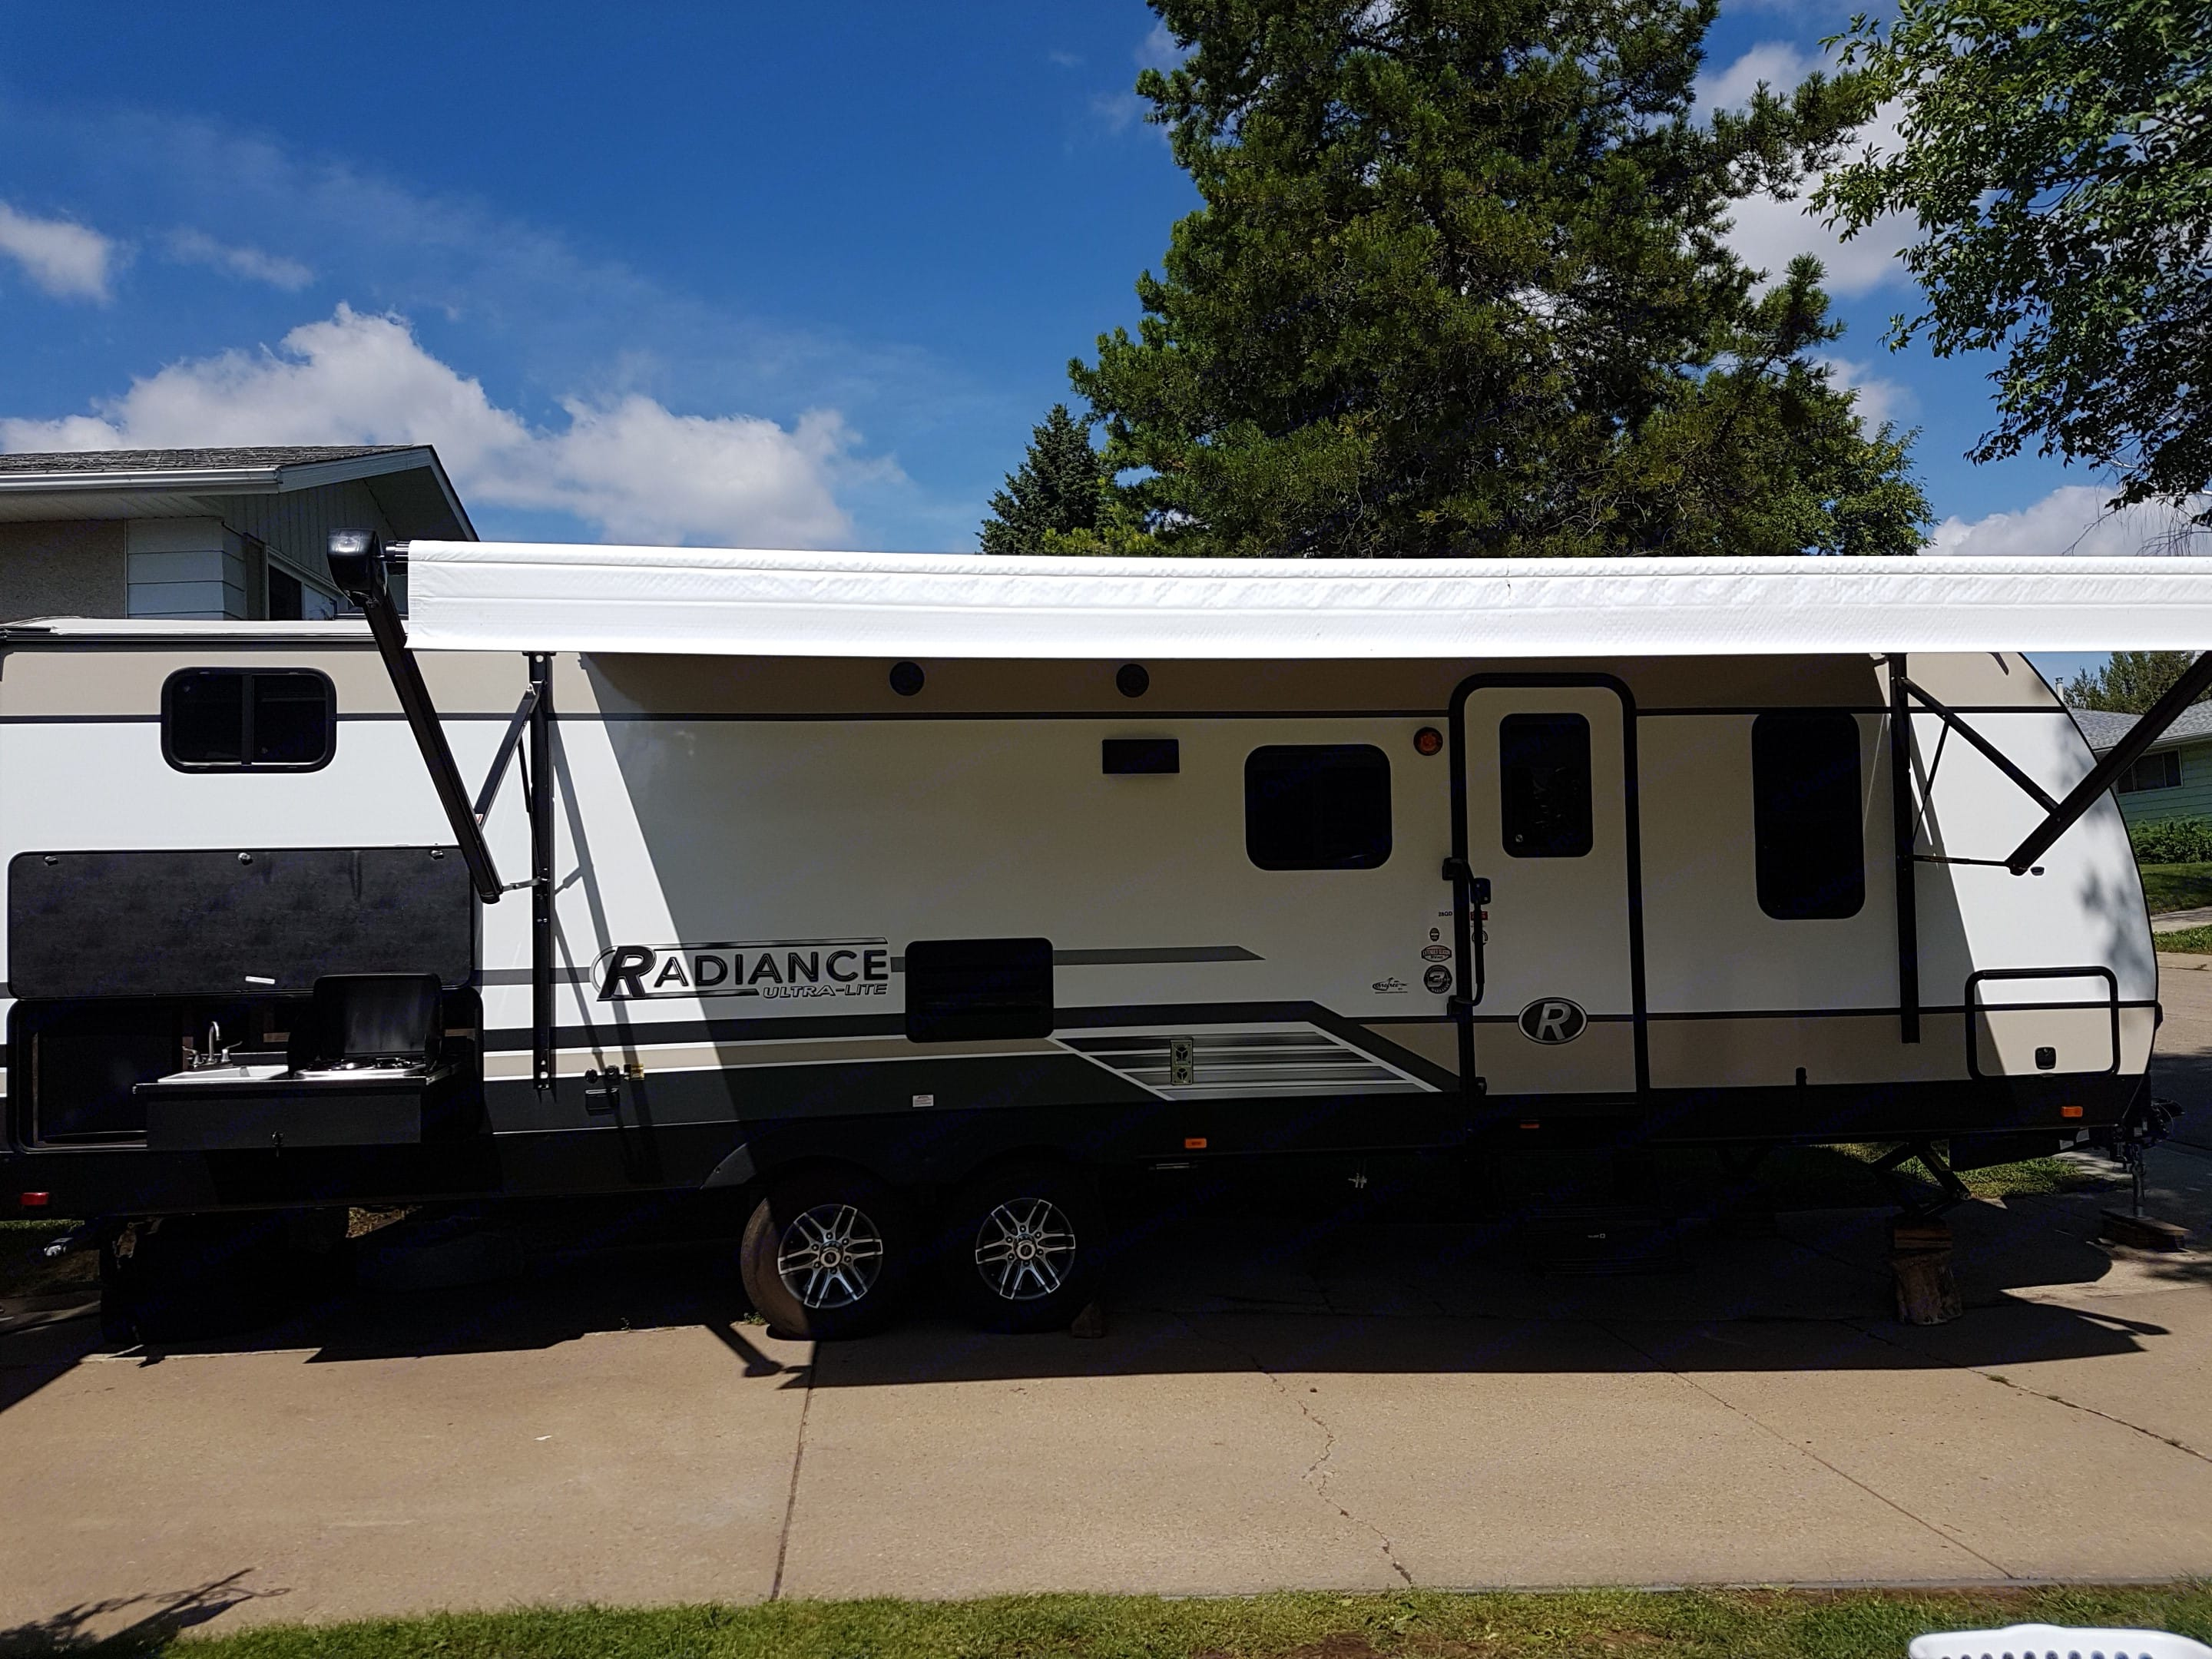 Immaculate Family Trailer with awning and outdoor kitchen for maximum enjoyment of outdoor space. Cruiser Rv Corp Radiance 2019